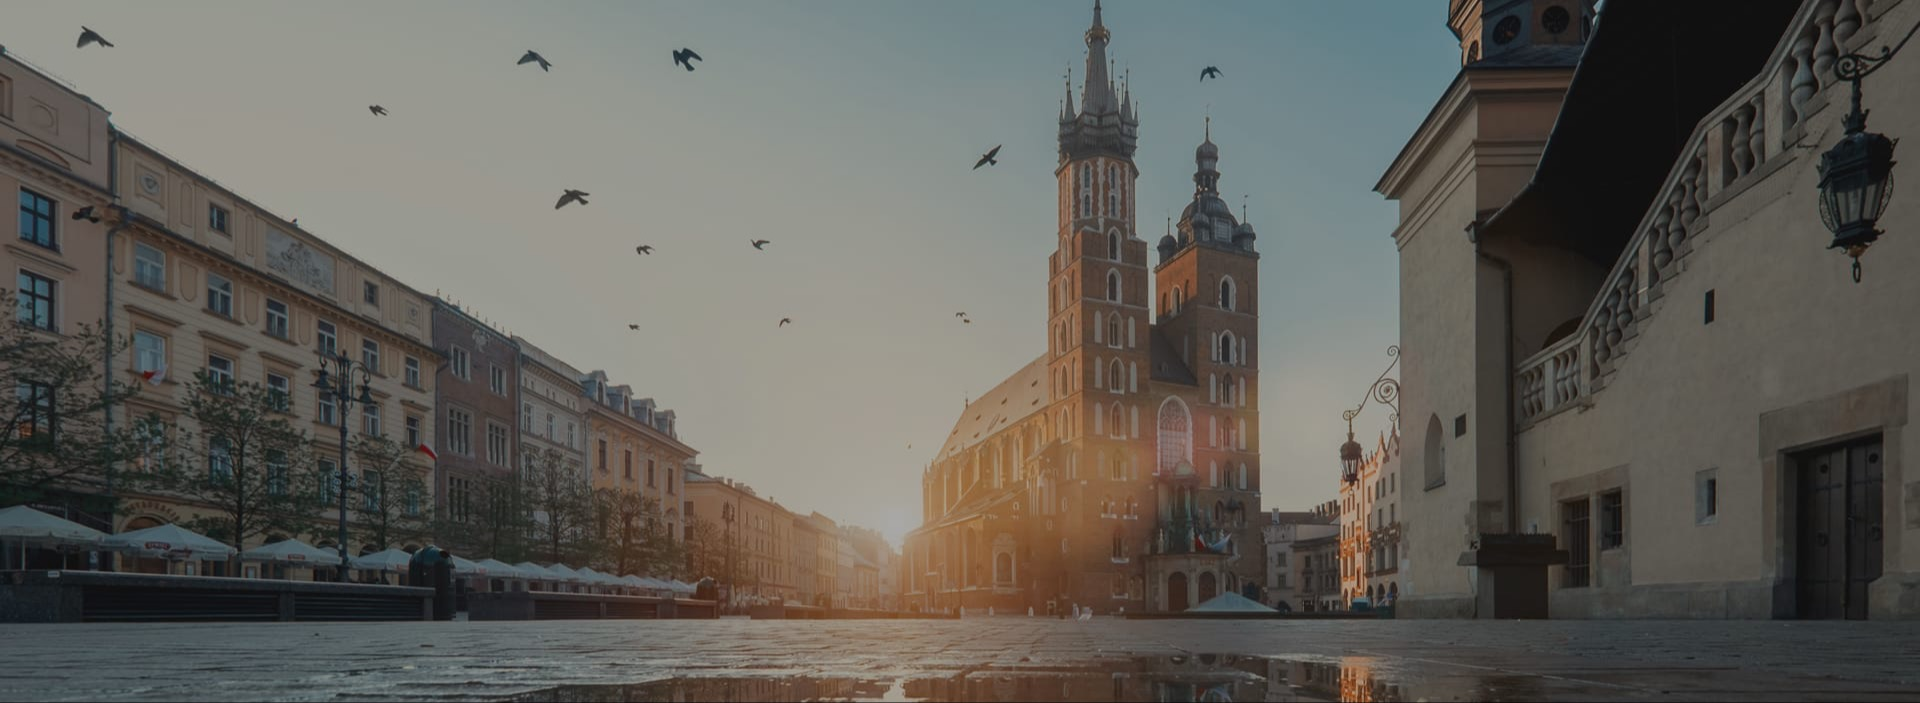 Software development in Poland: major IT hubs, developers, and more